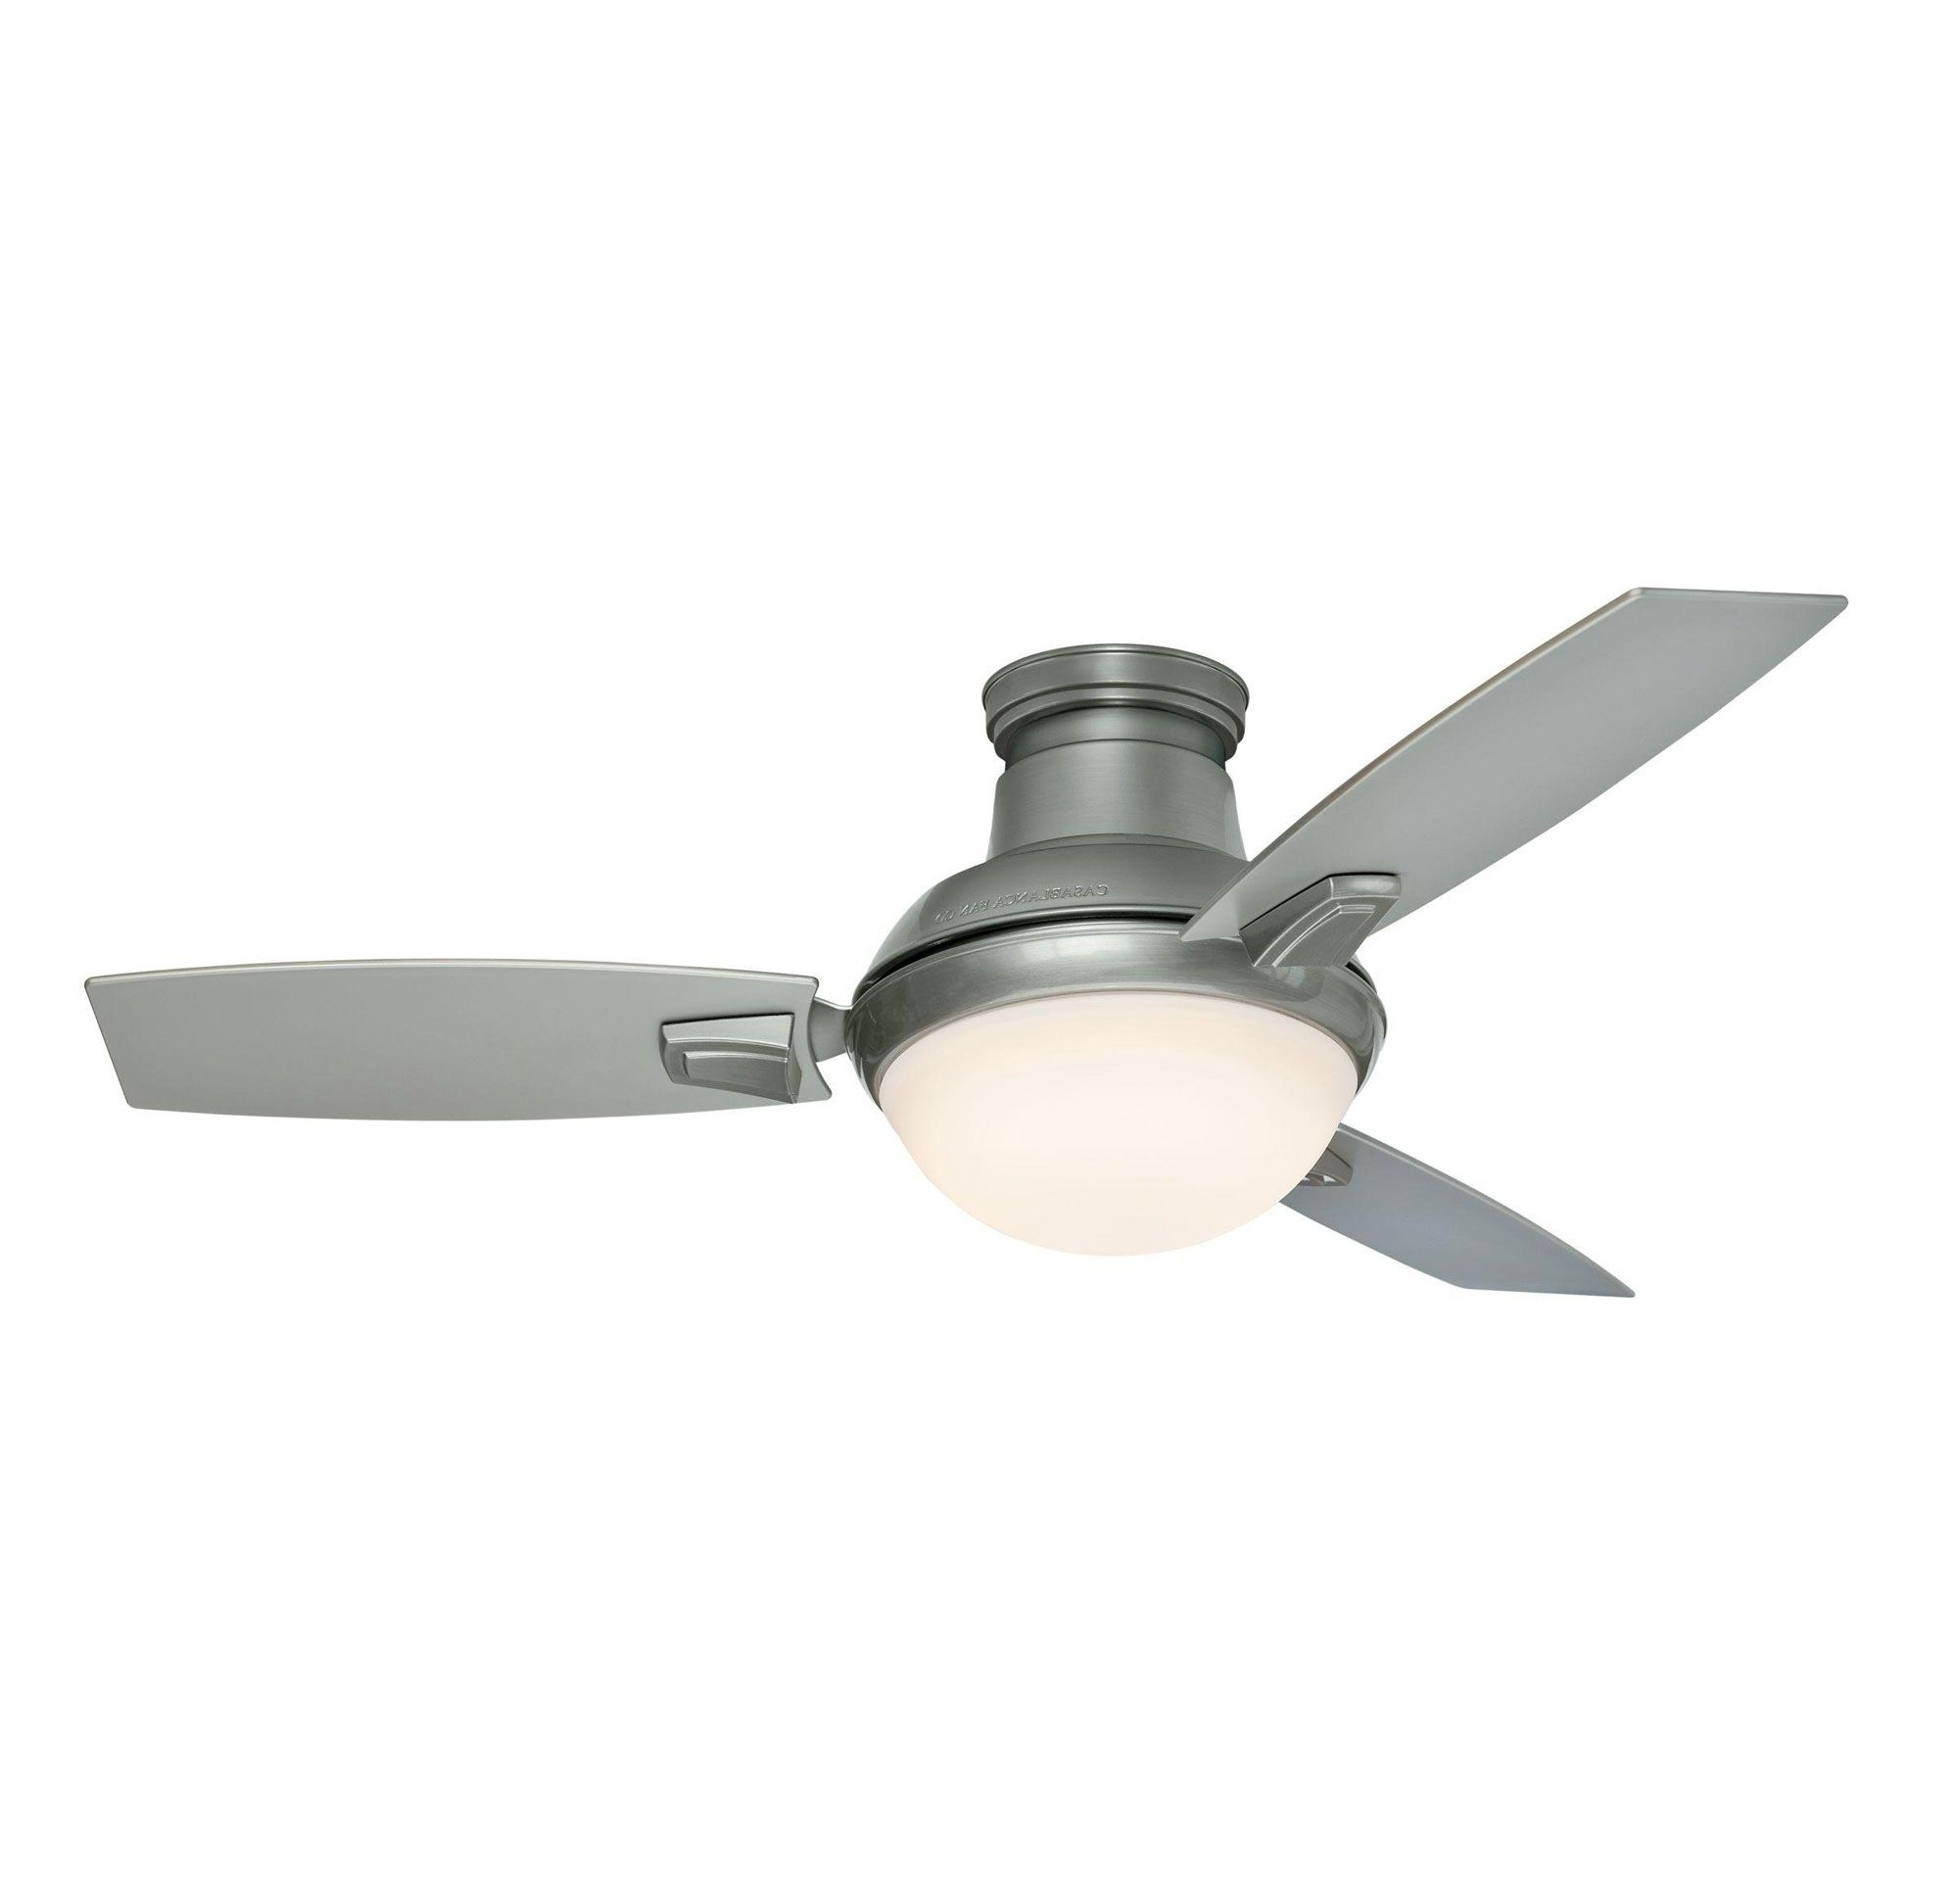 44 Inch Outdoor Ceiling Fans With Lights Intended For Most Recently Released Verse 44 Inch Led Ceiling Fan Is Perfect For A Small Or Medium Sized (View 1 of 20)